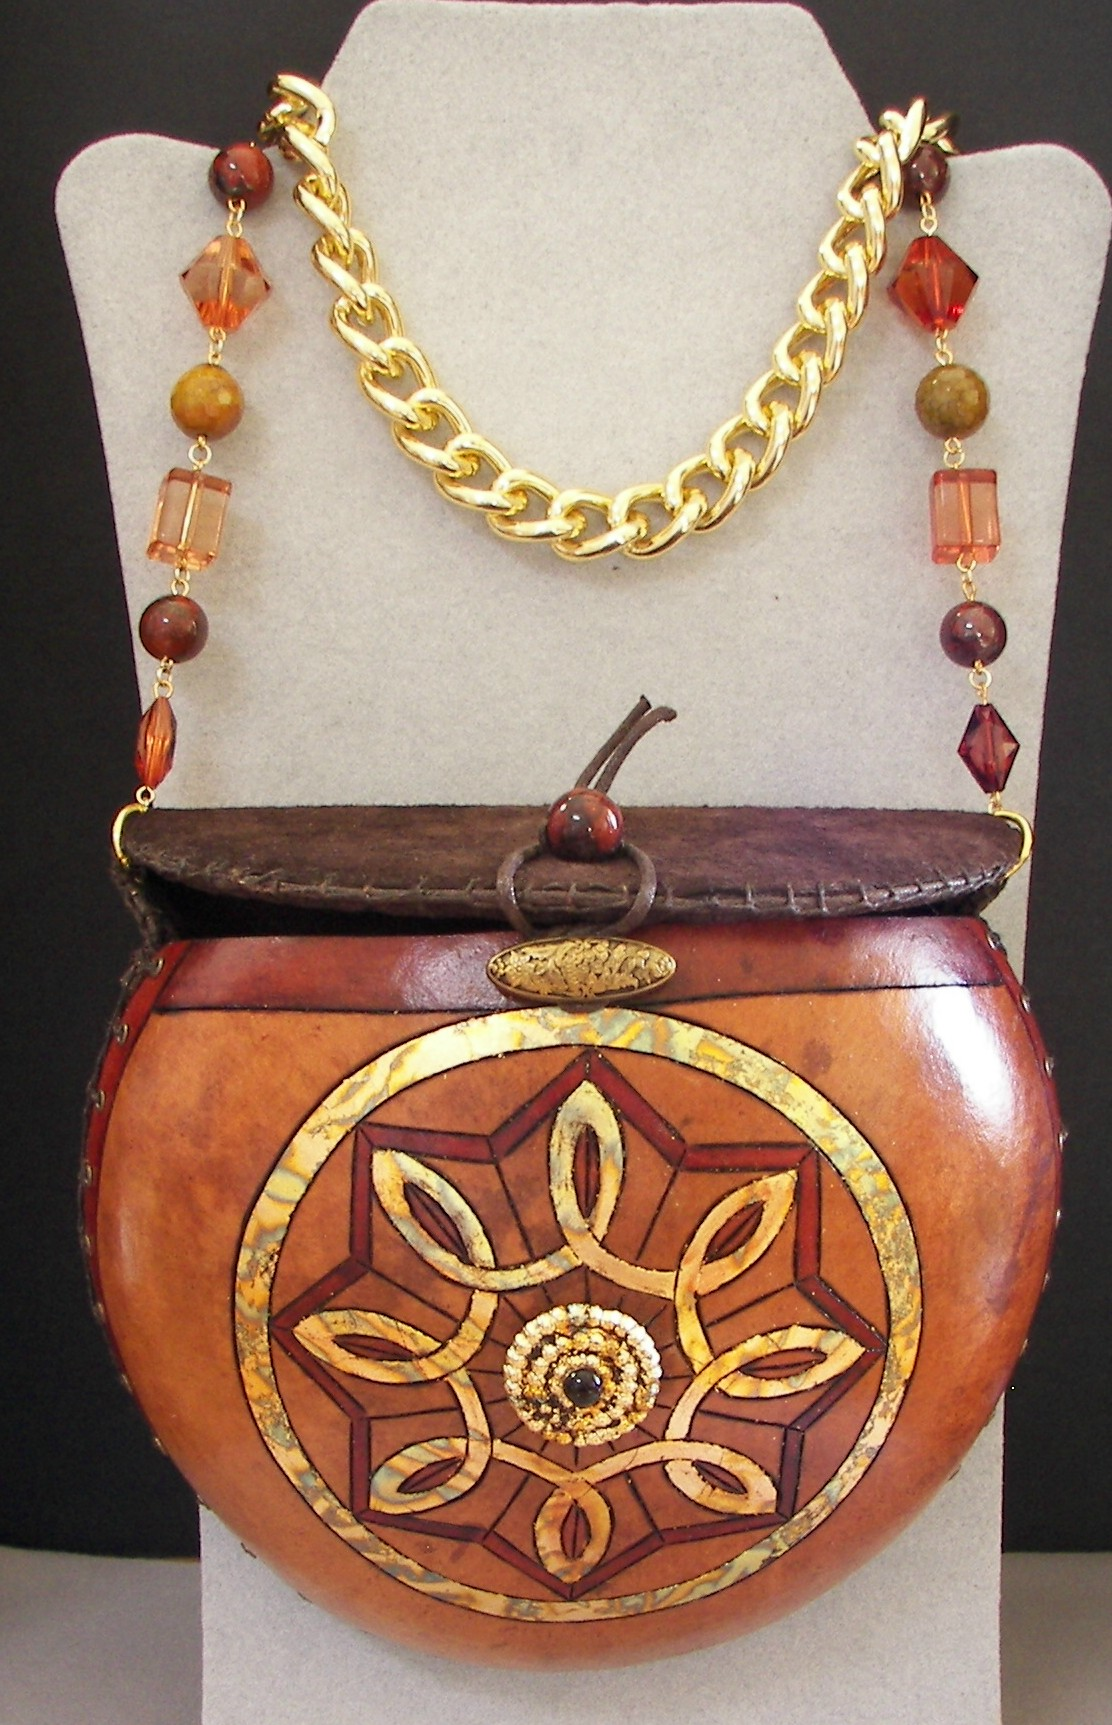 Advertising-Gourd-Purse-10-31-14